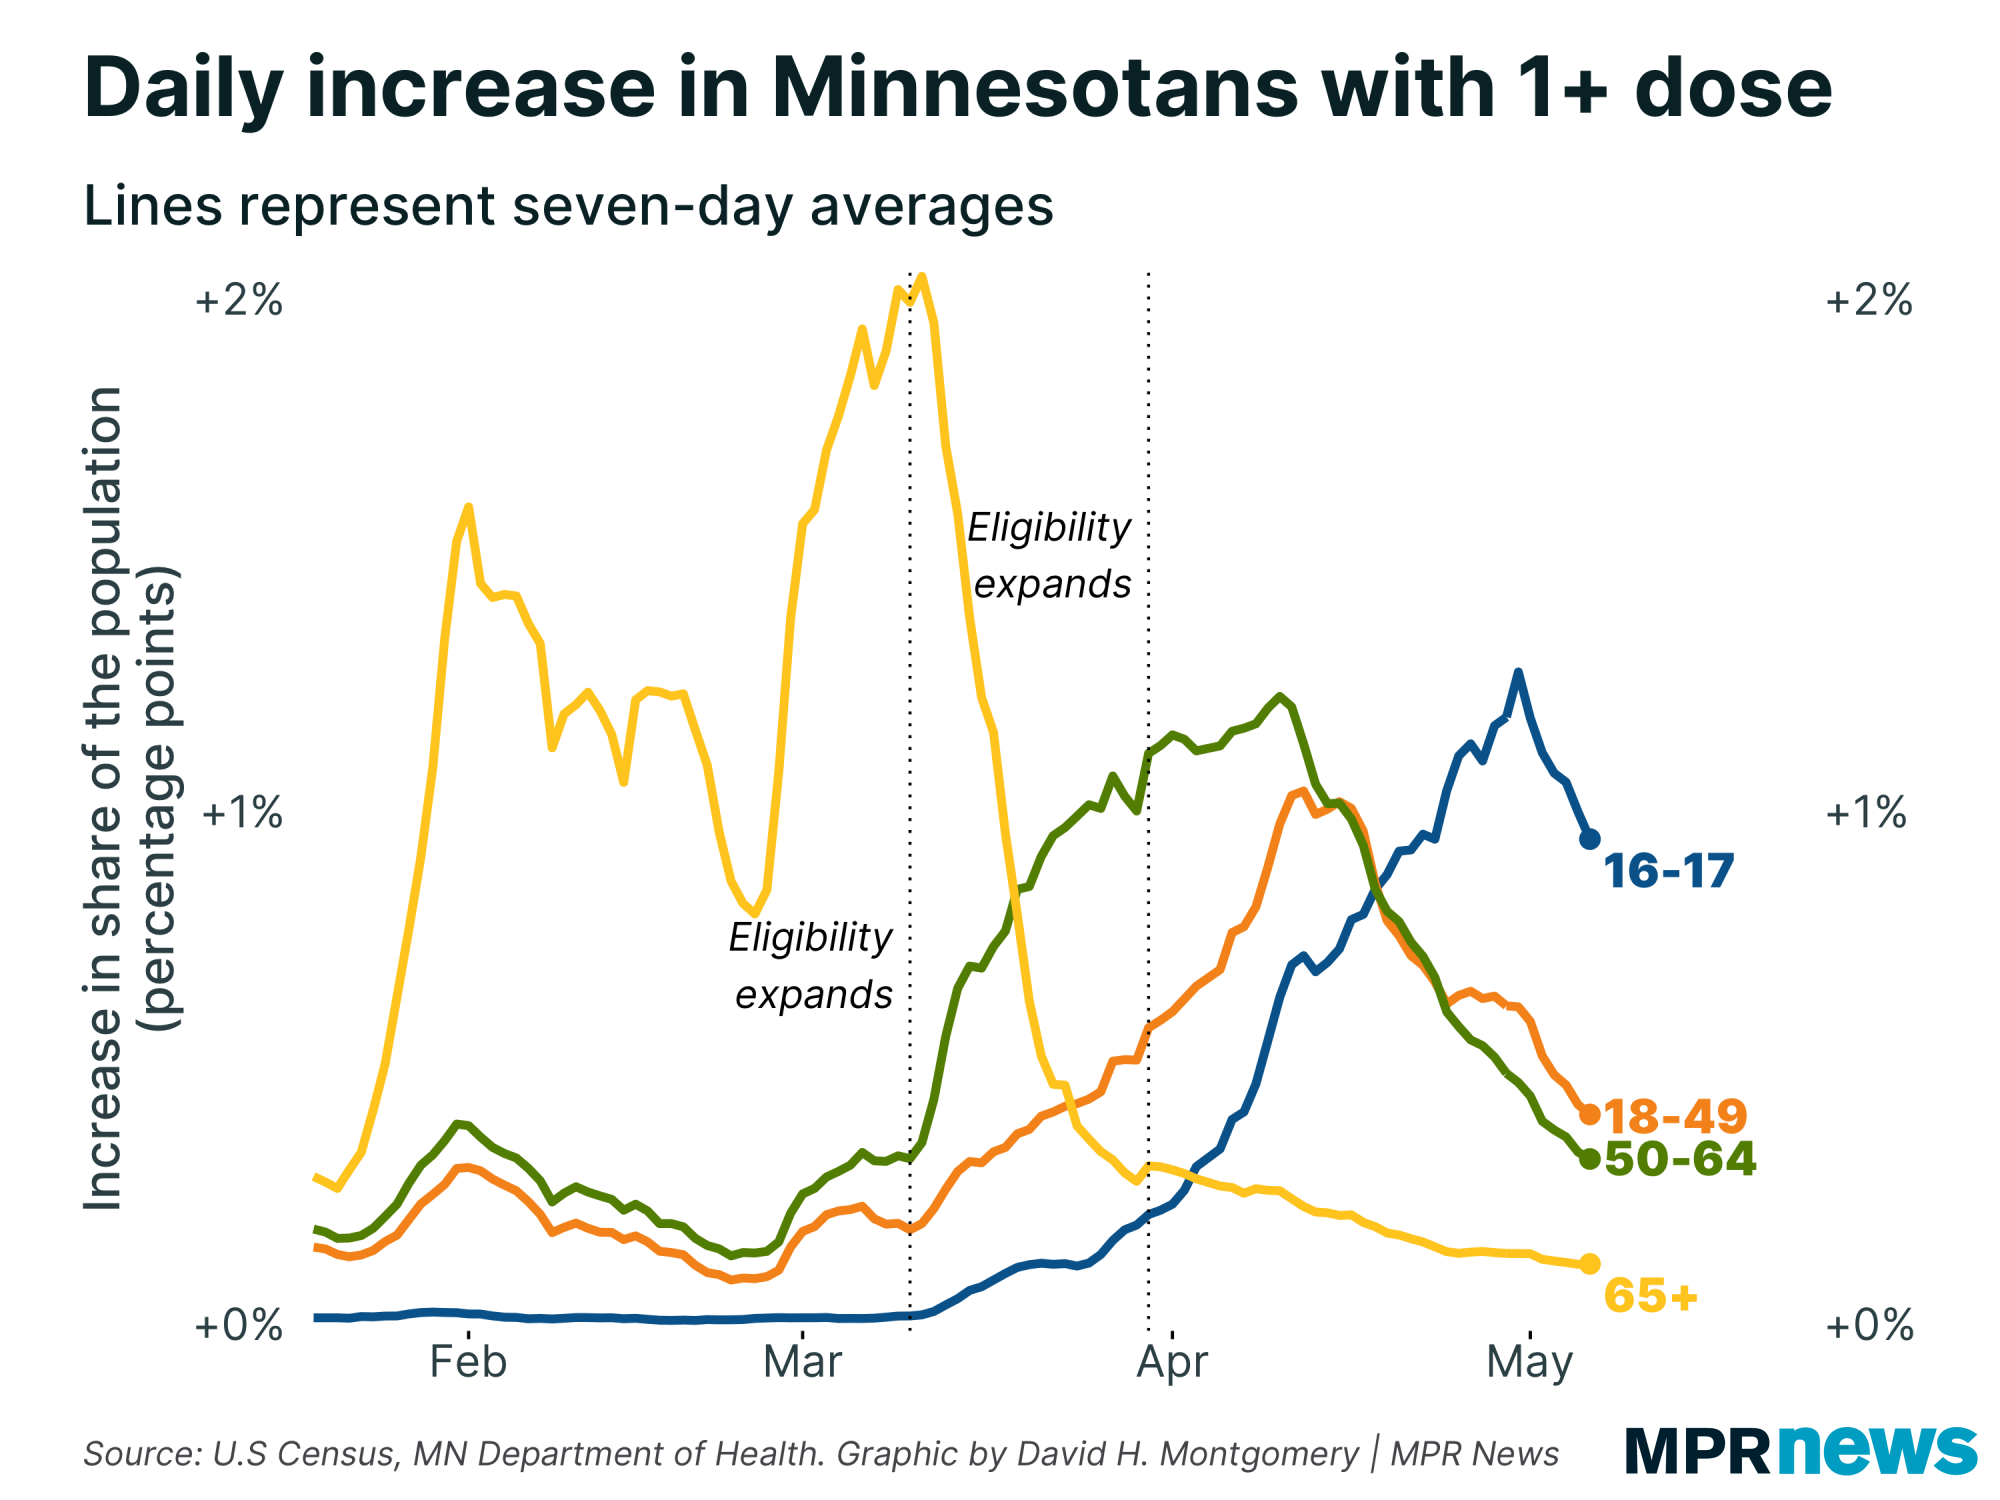 Daily increase in Minnesotans with at least one dose, by age